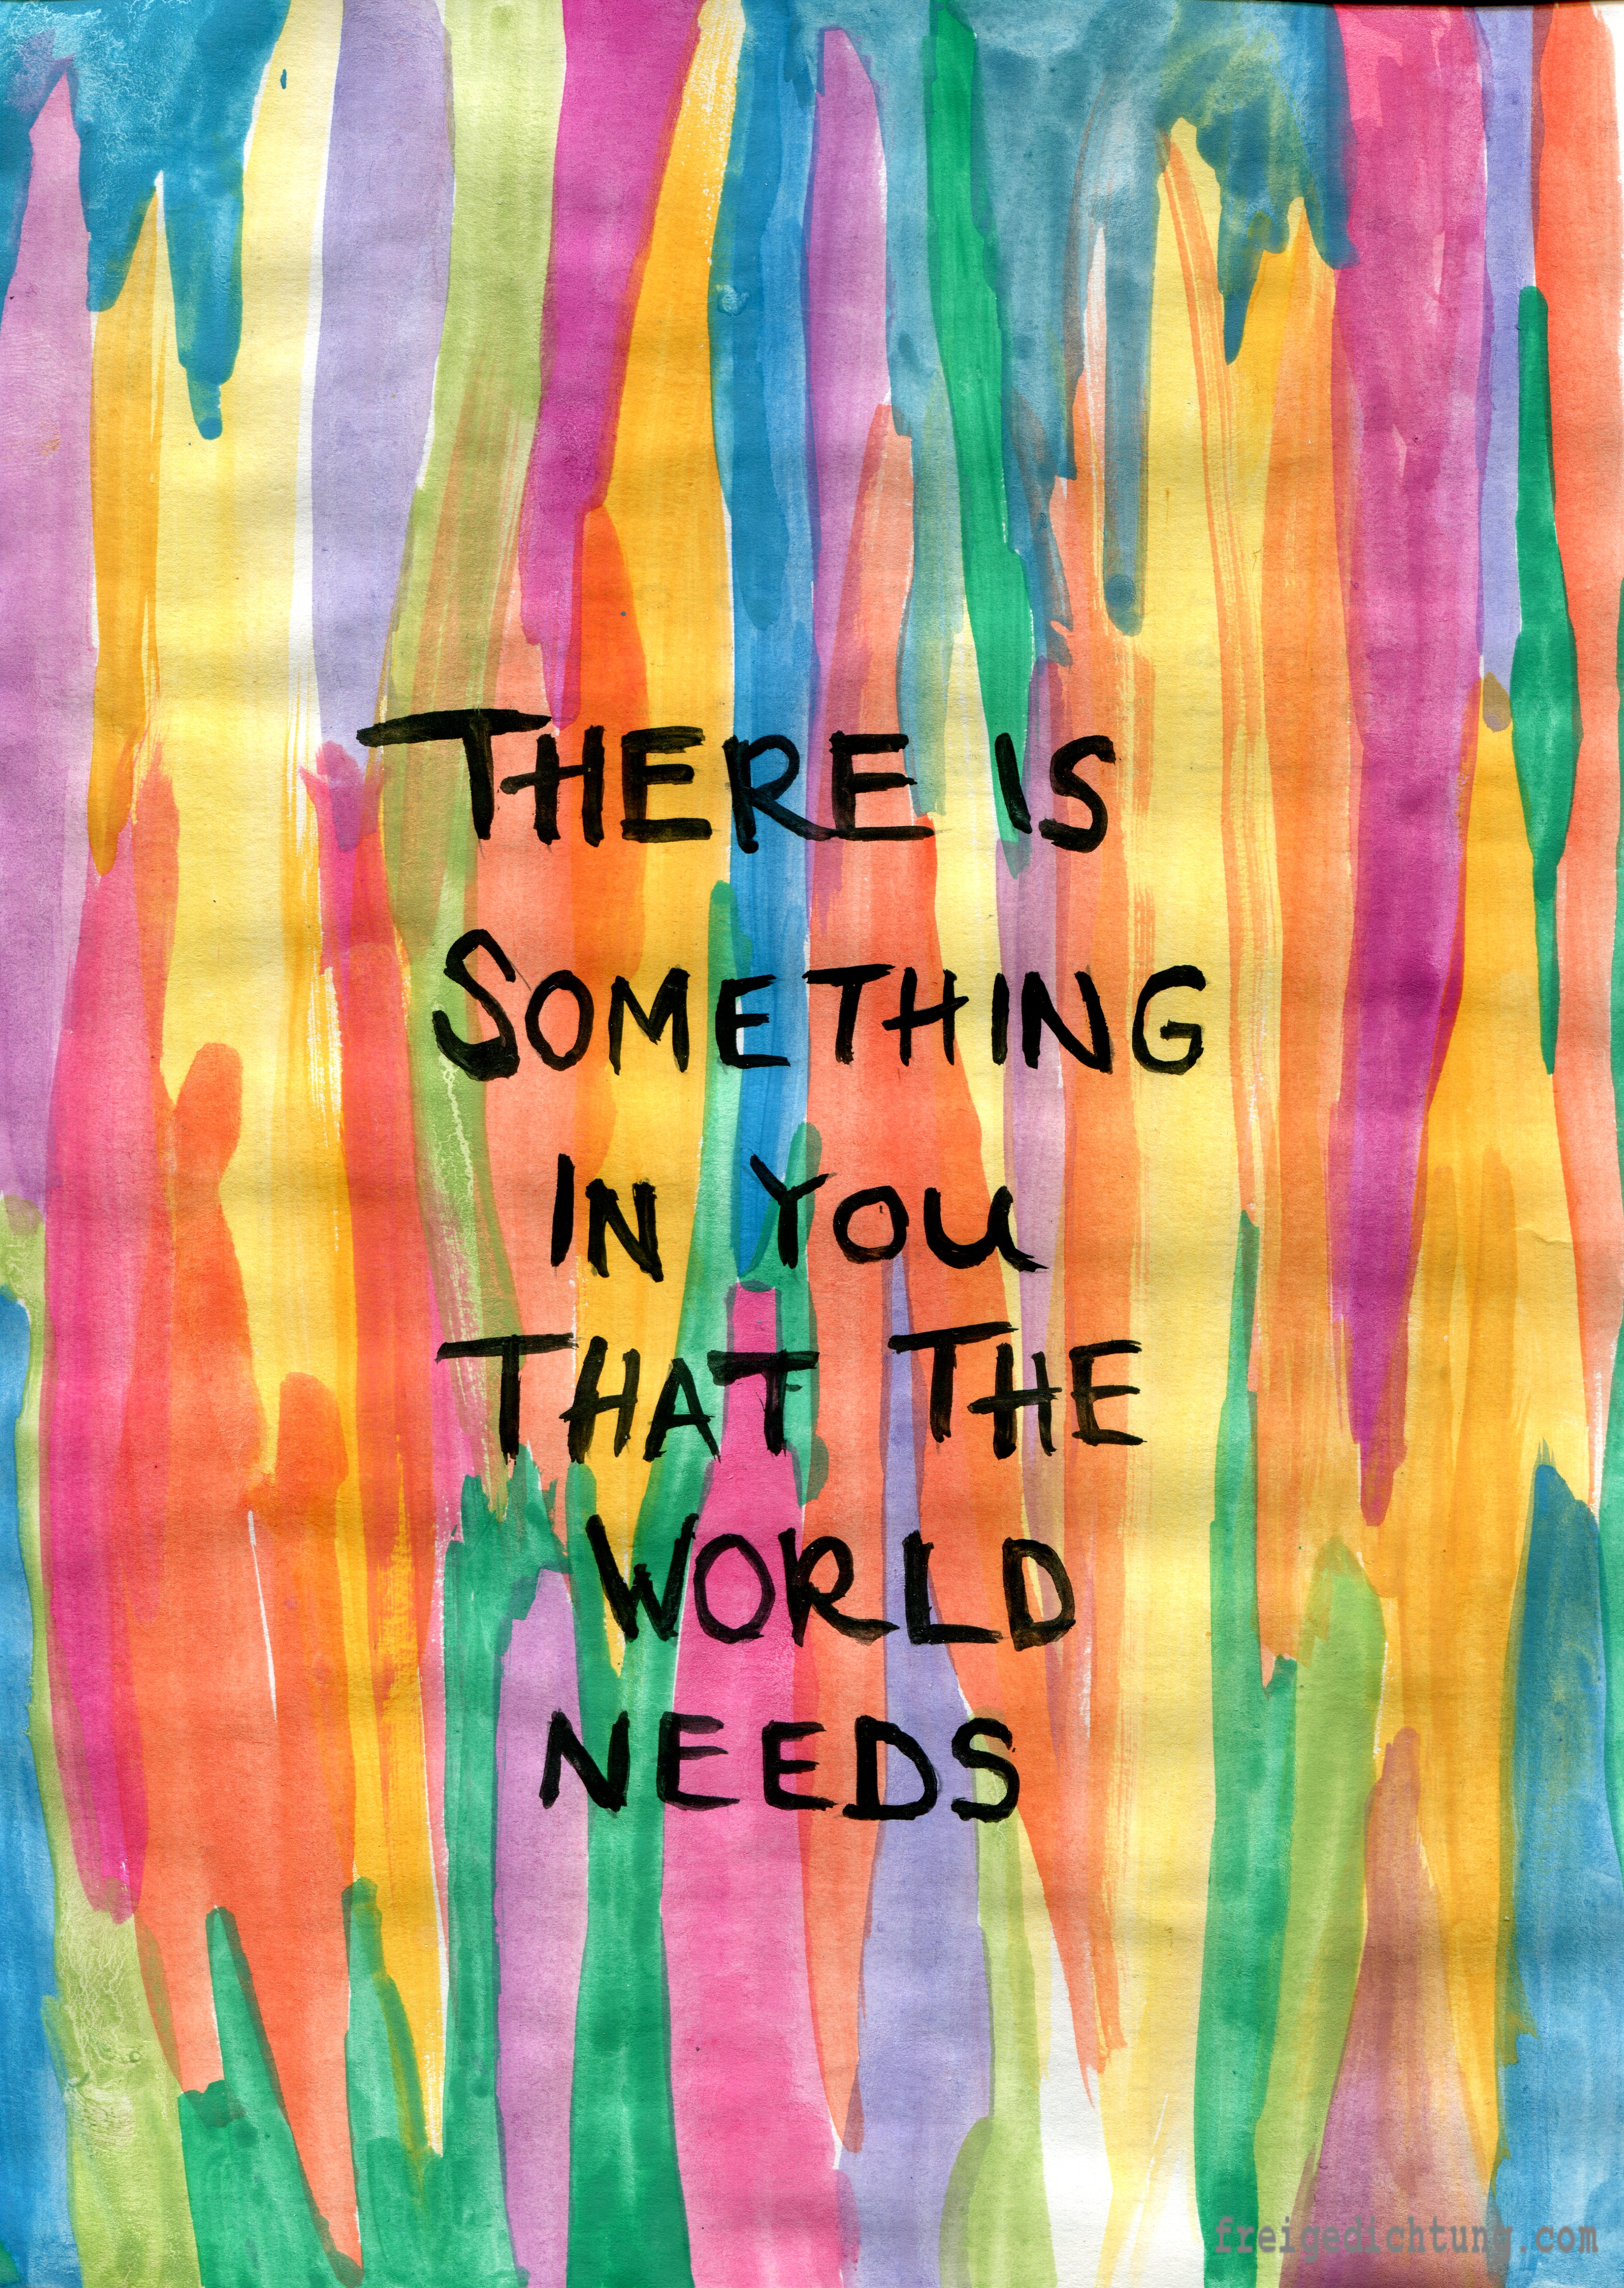 12-zitat-there-is-something-in-you-that-the-world-needs